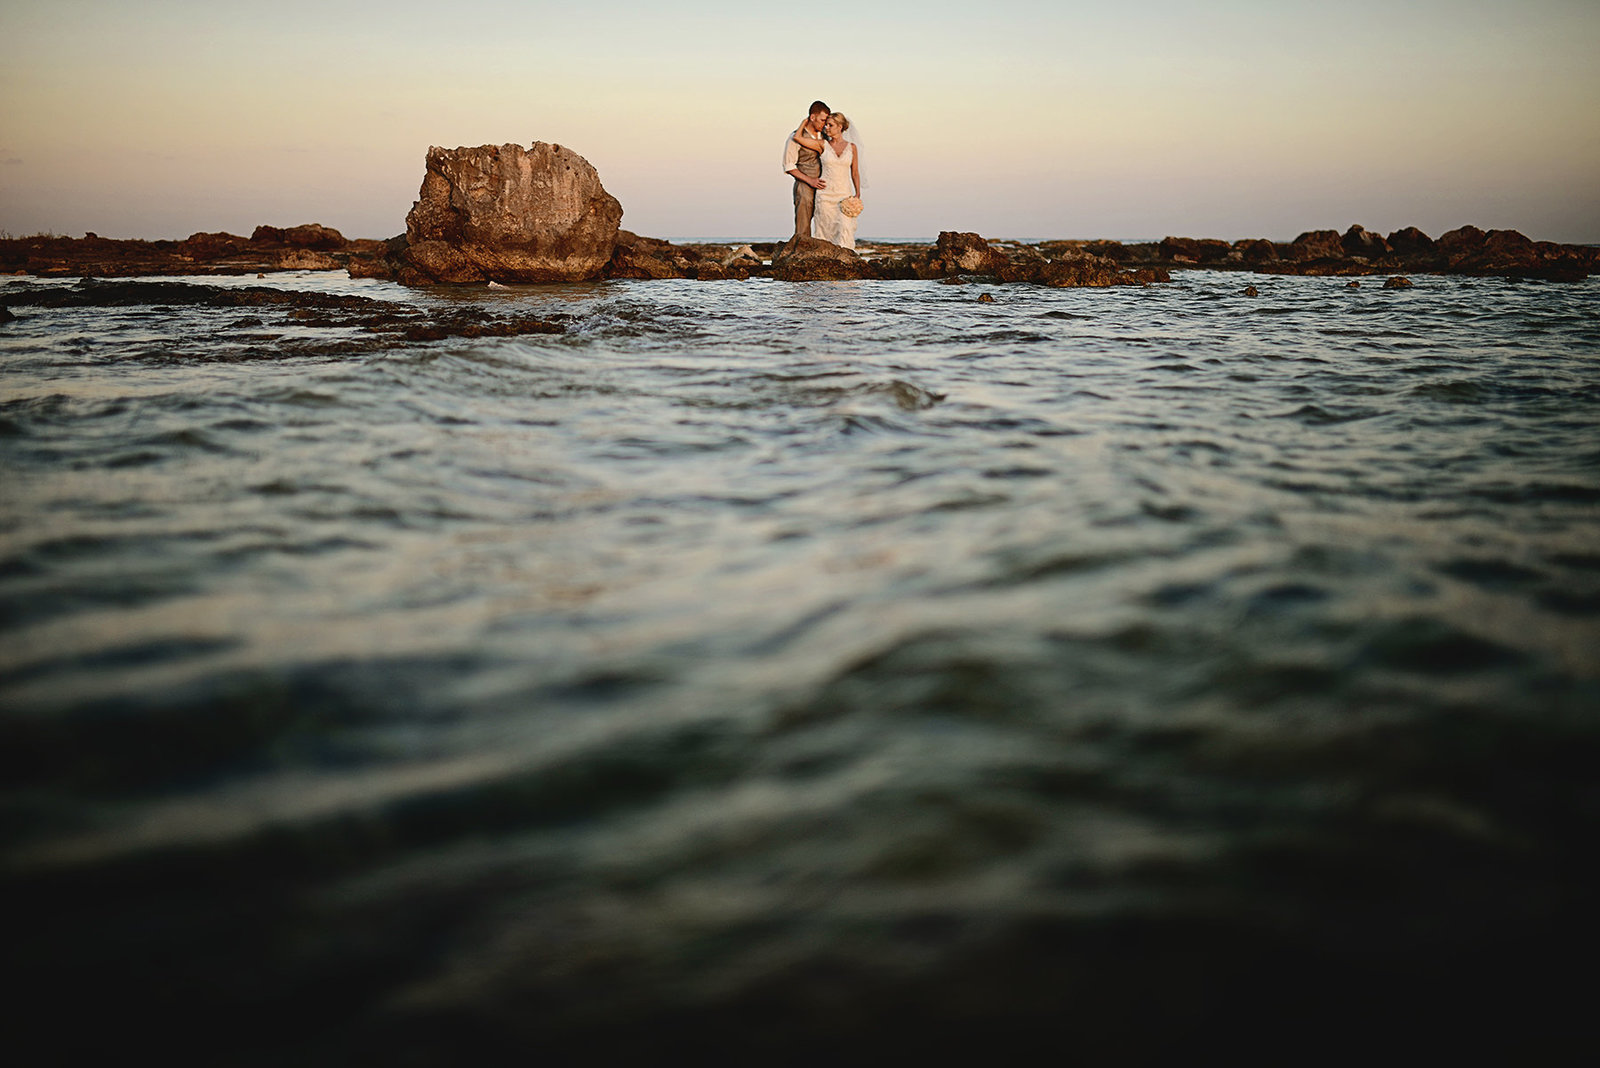 barcelo maya beach resort wedding destination wedding photographer bryan newfield photography 39